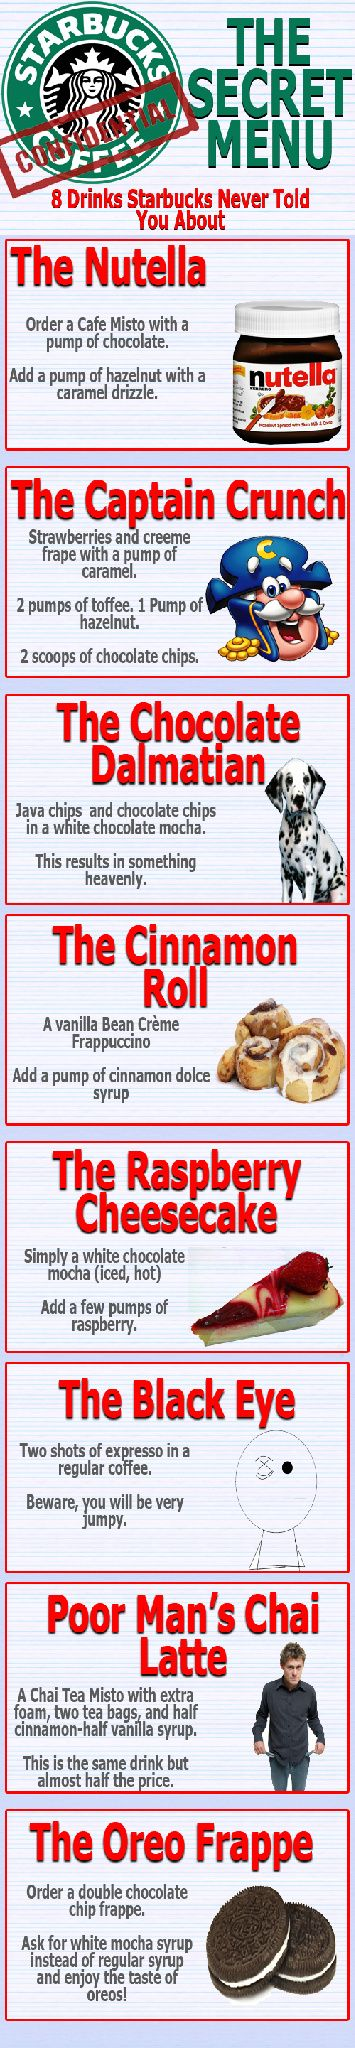 trying all of these!: Starbucks Drinks, Recipe, Drinks Menu, Crunches, Cinnamon Rolls, Starbuckssecretmenu, The Secret, Starbucks Secret Menu, Secret Starbucks